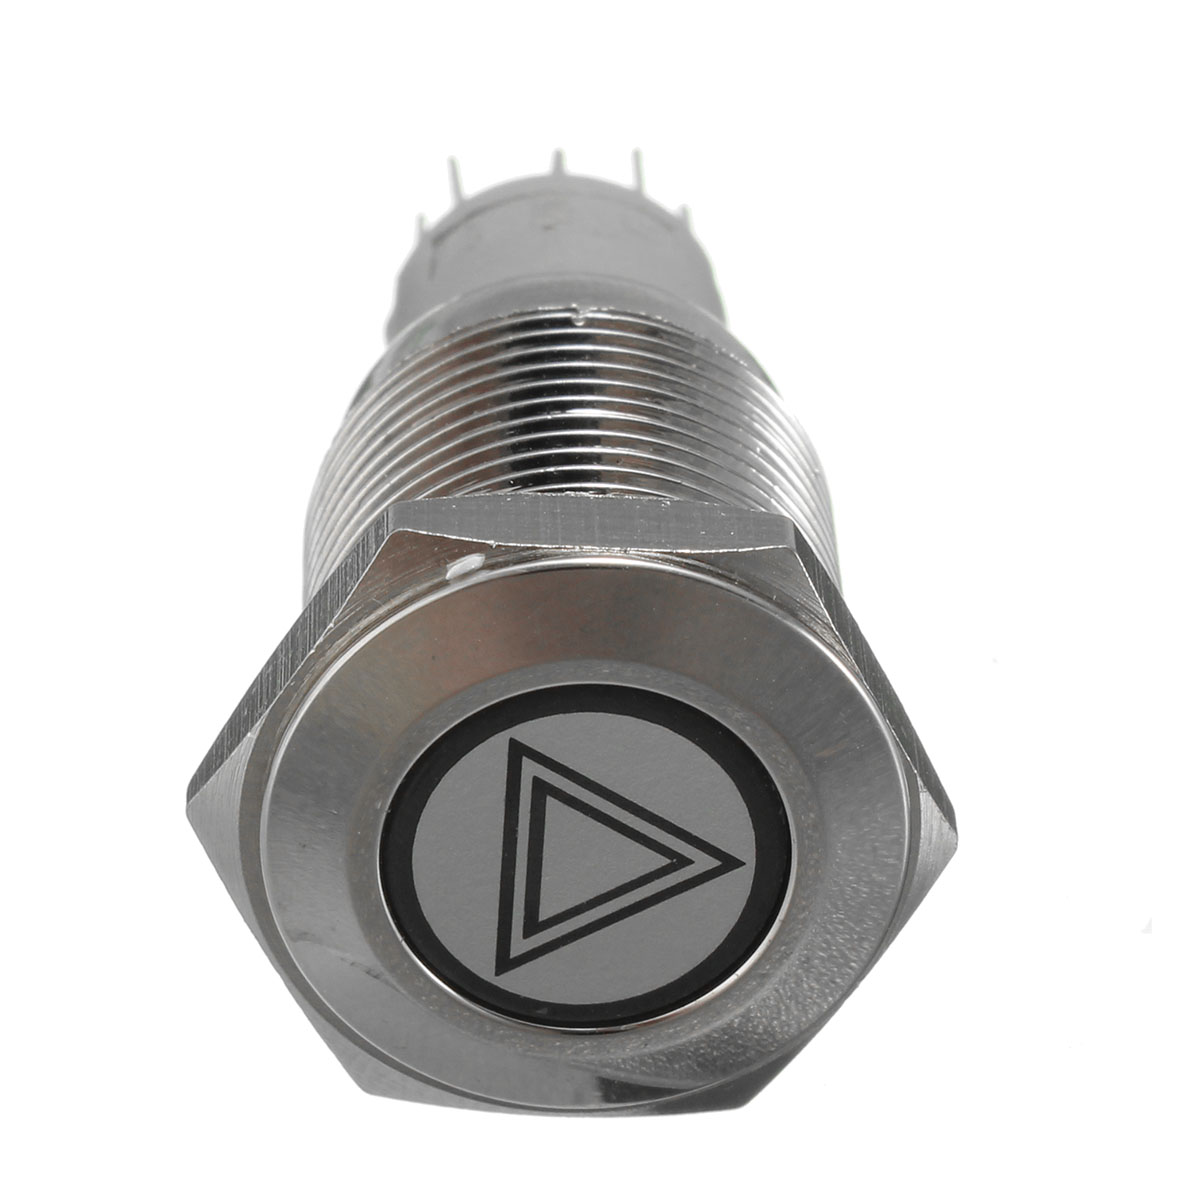 16mm Metal Push Button Panel Switch with Light Multiple Type